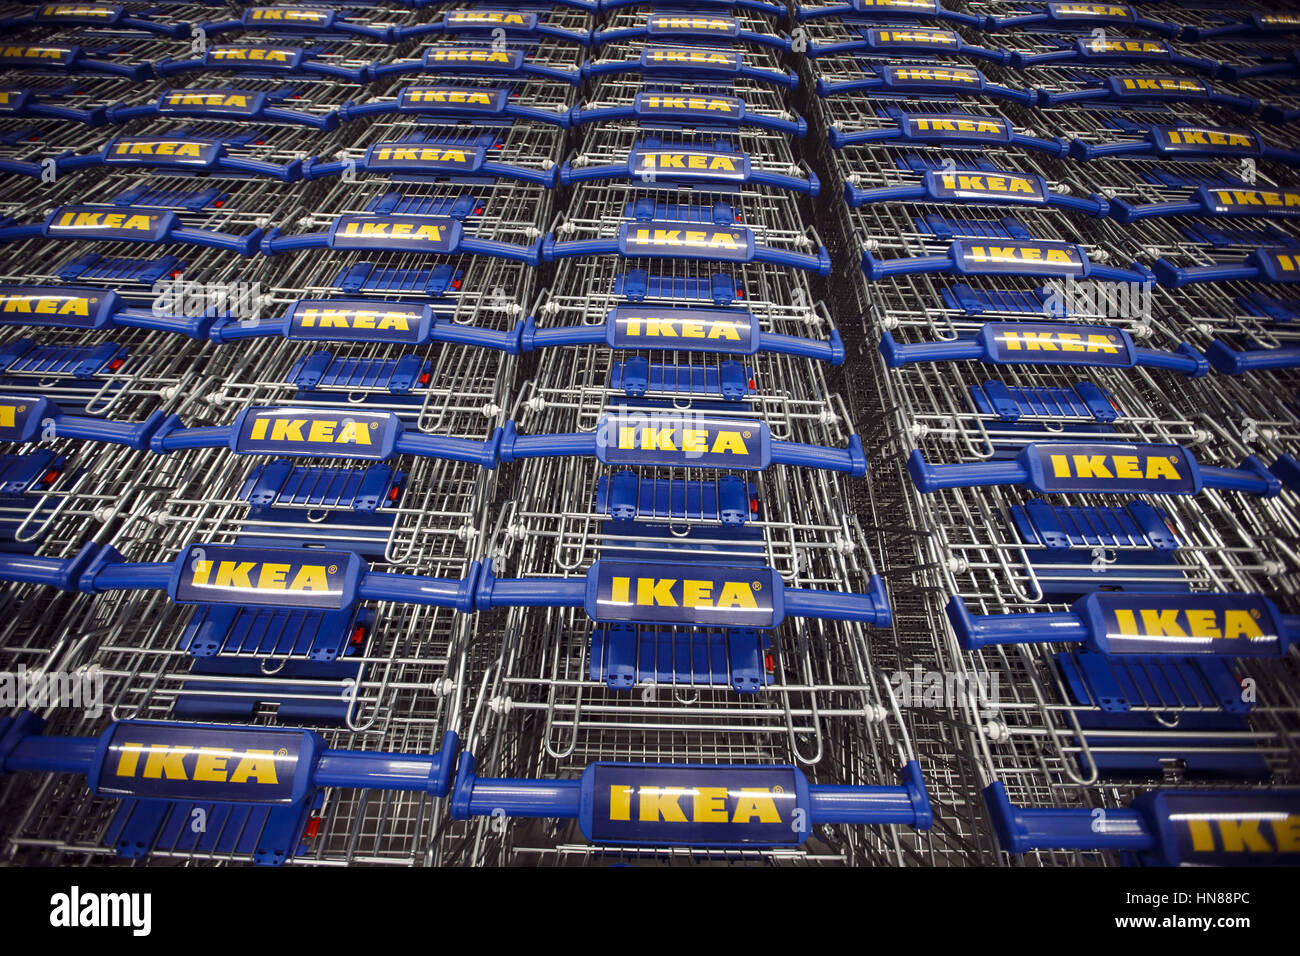 Burbank, CA, USA. 1st Feb, 2017. The IKEA Logo Is Displayed On Rows Of  Shopping Carts During A Preview Of The New IKEA Burbank Home Furnishings  Store On ...